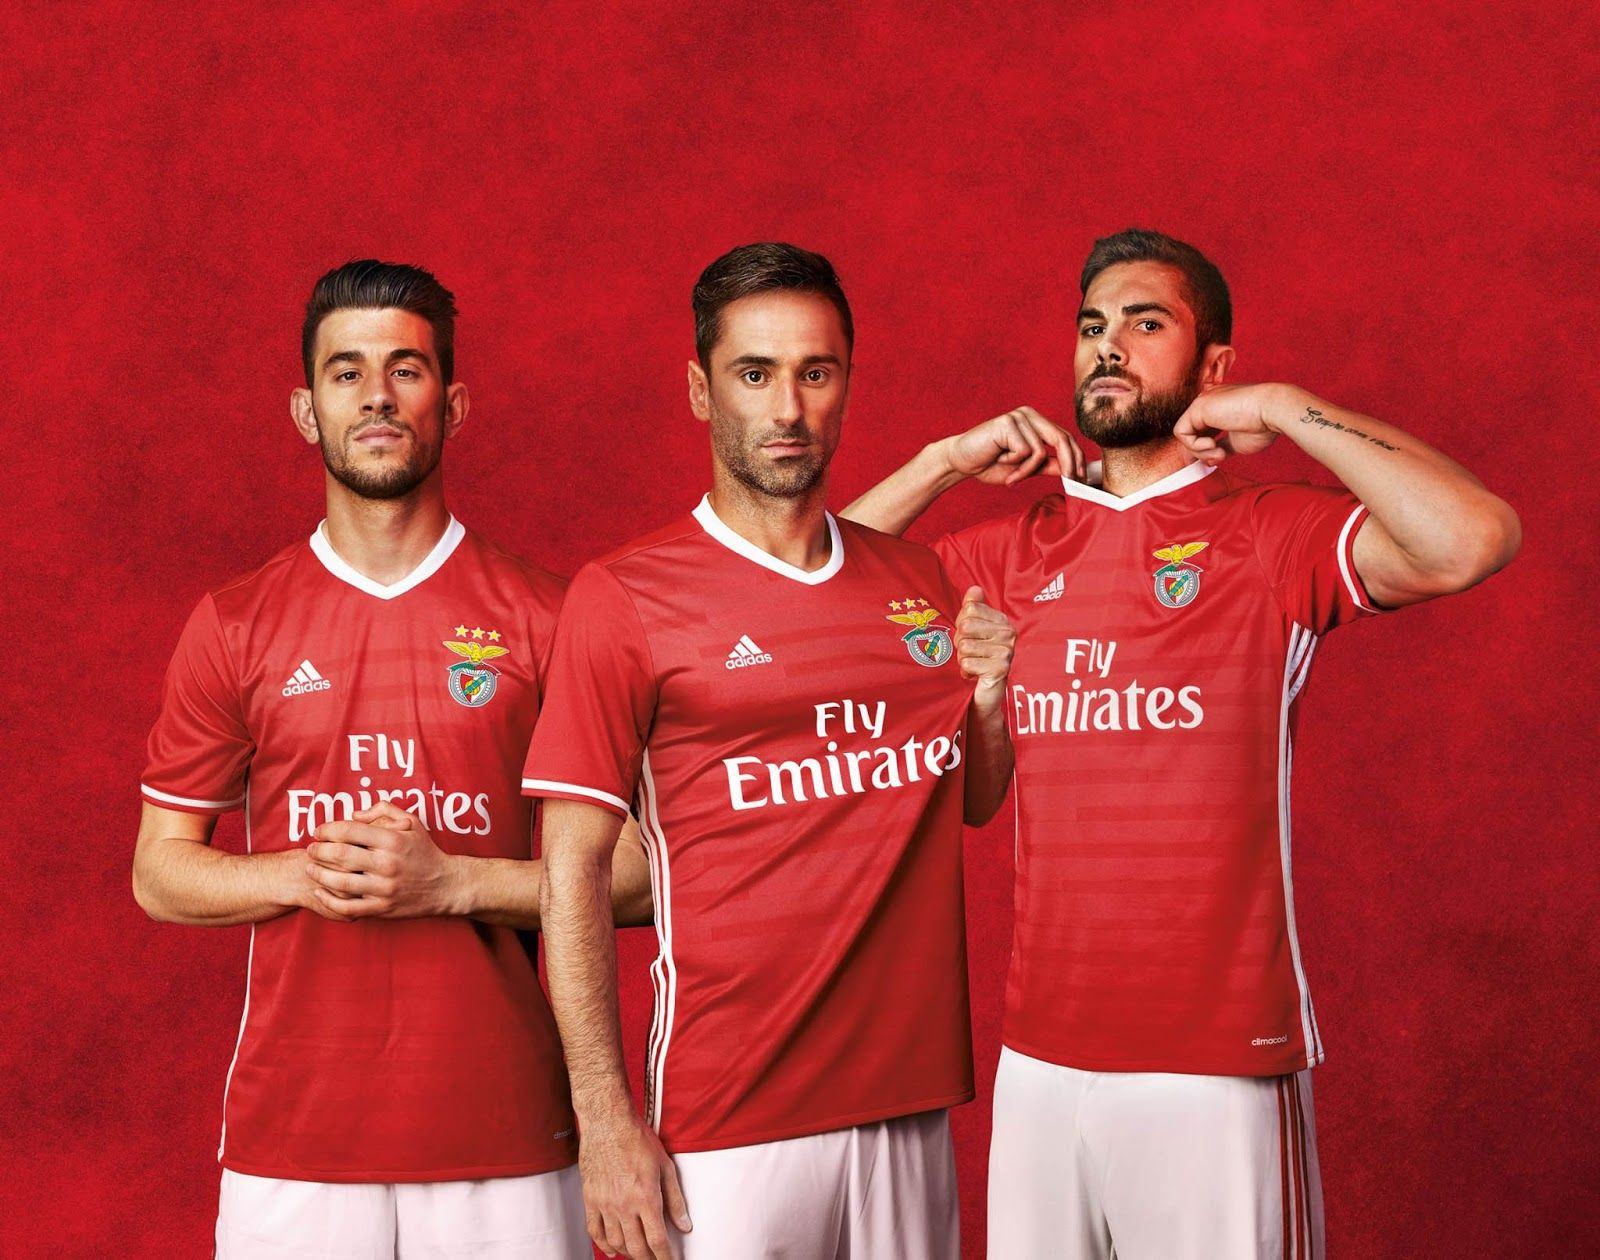 Football com category football kits image sl benfica 1st kit - The Benfica Home And Away Kits Introduce Clean Designs Boasting Adidas Iconic Three Stripes